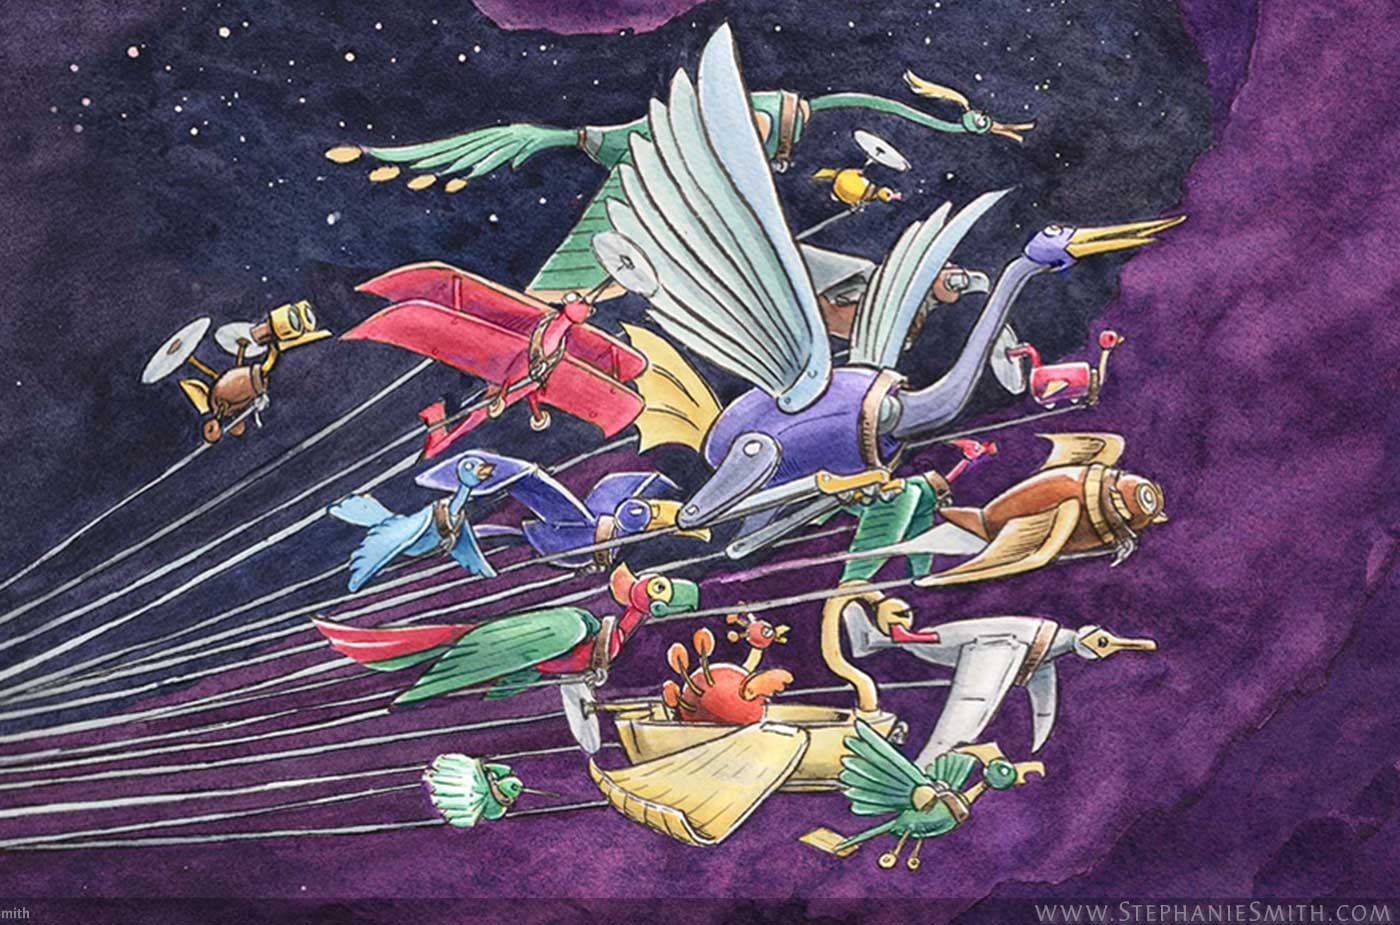 Painting of flock of robot birds flying through outer space